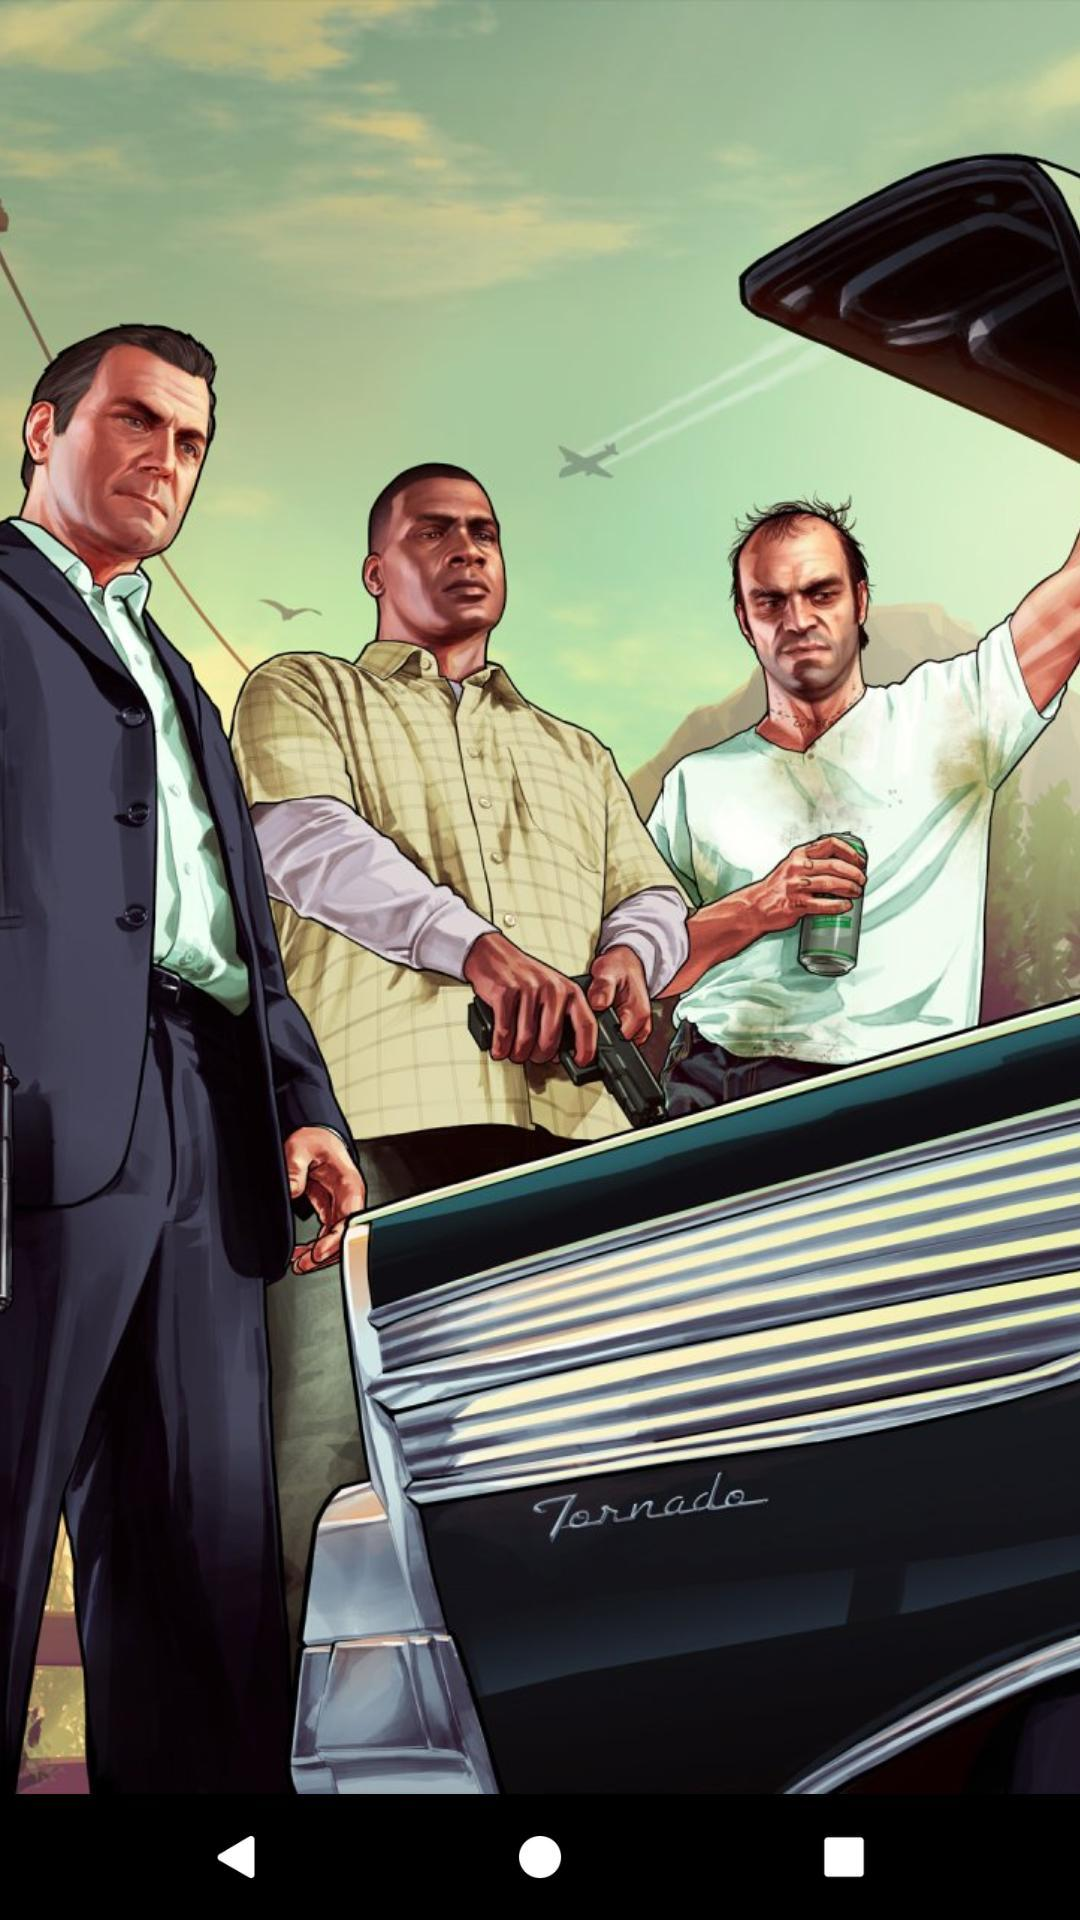 Gta 5 Wallpaper For Android Free Download